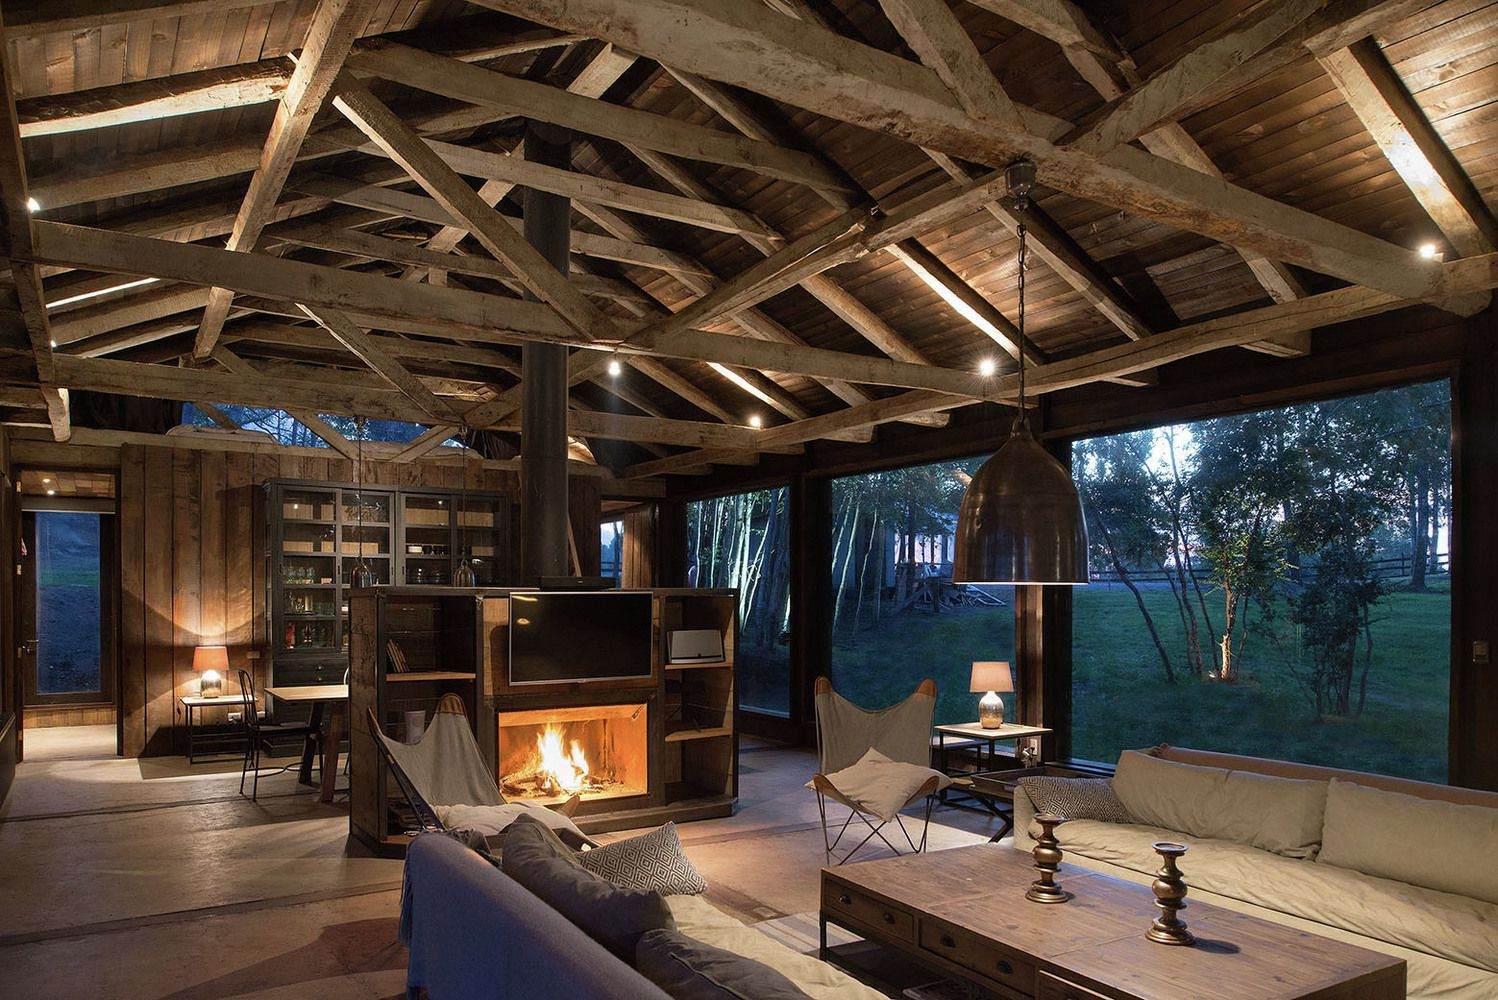 The Barn House as a recycling proposal is part of a construction material rescued by three friends that bought an ...